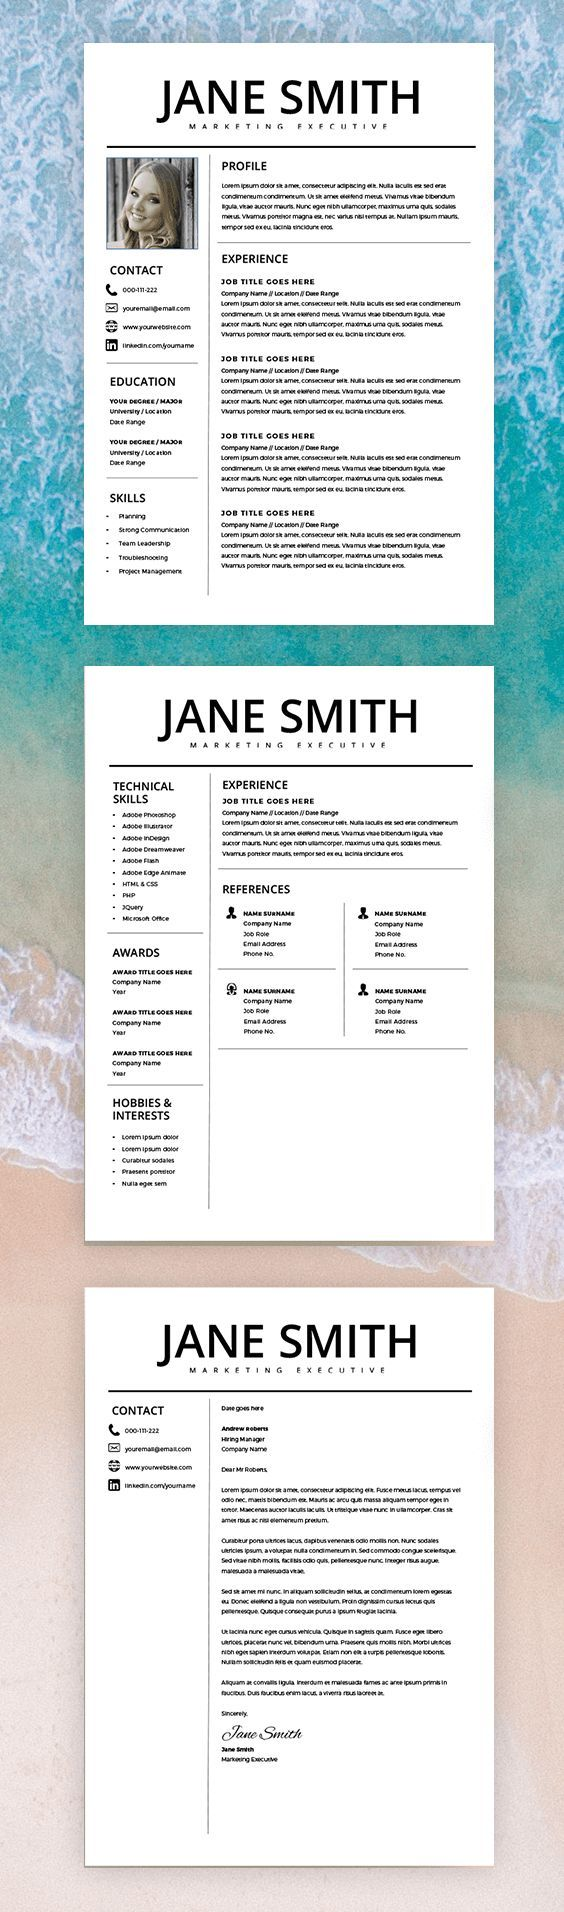 Download Free Professional Resume Templates Best Professional Resume Template  Ms Word Compatible  Best Cv Template .